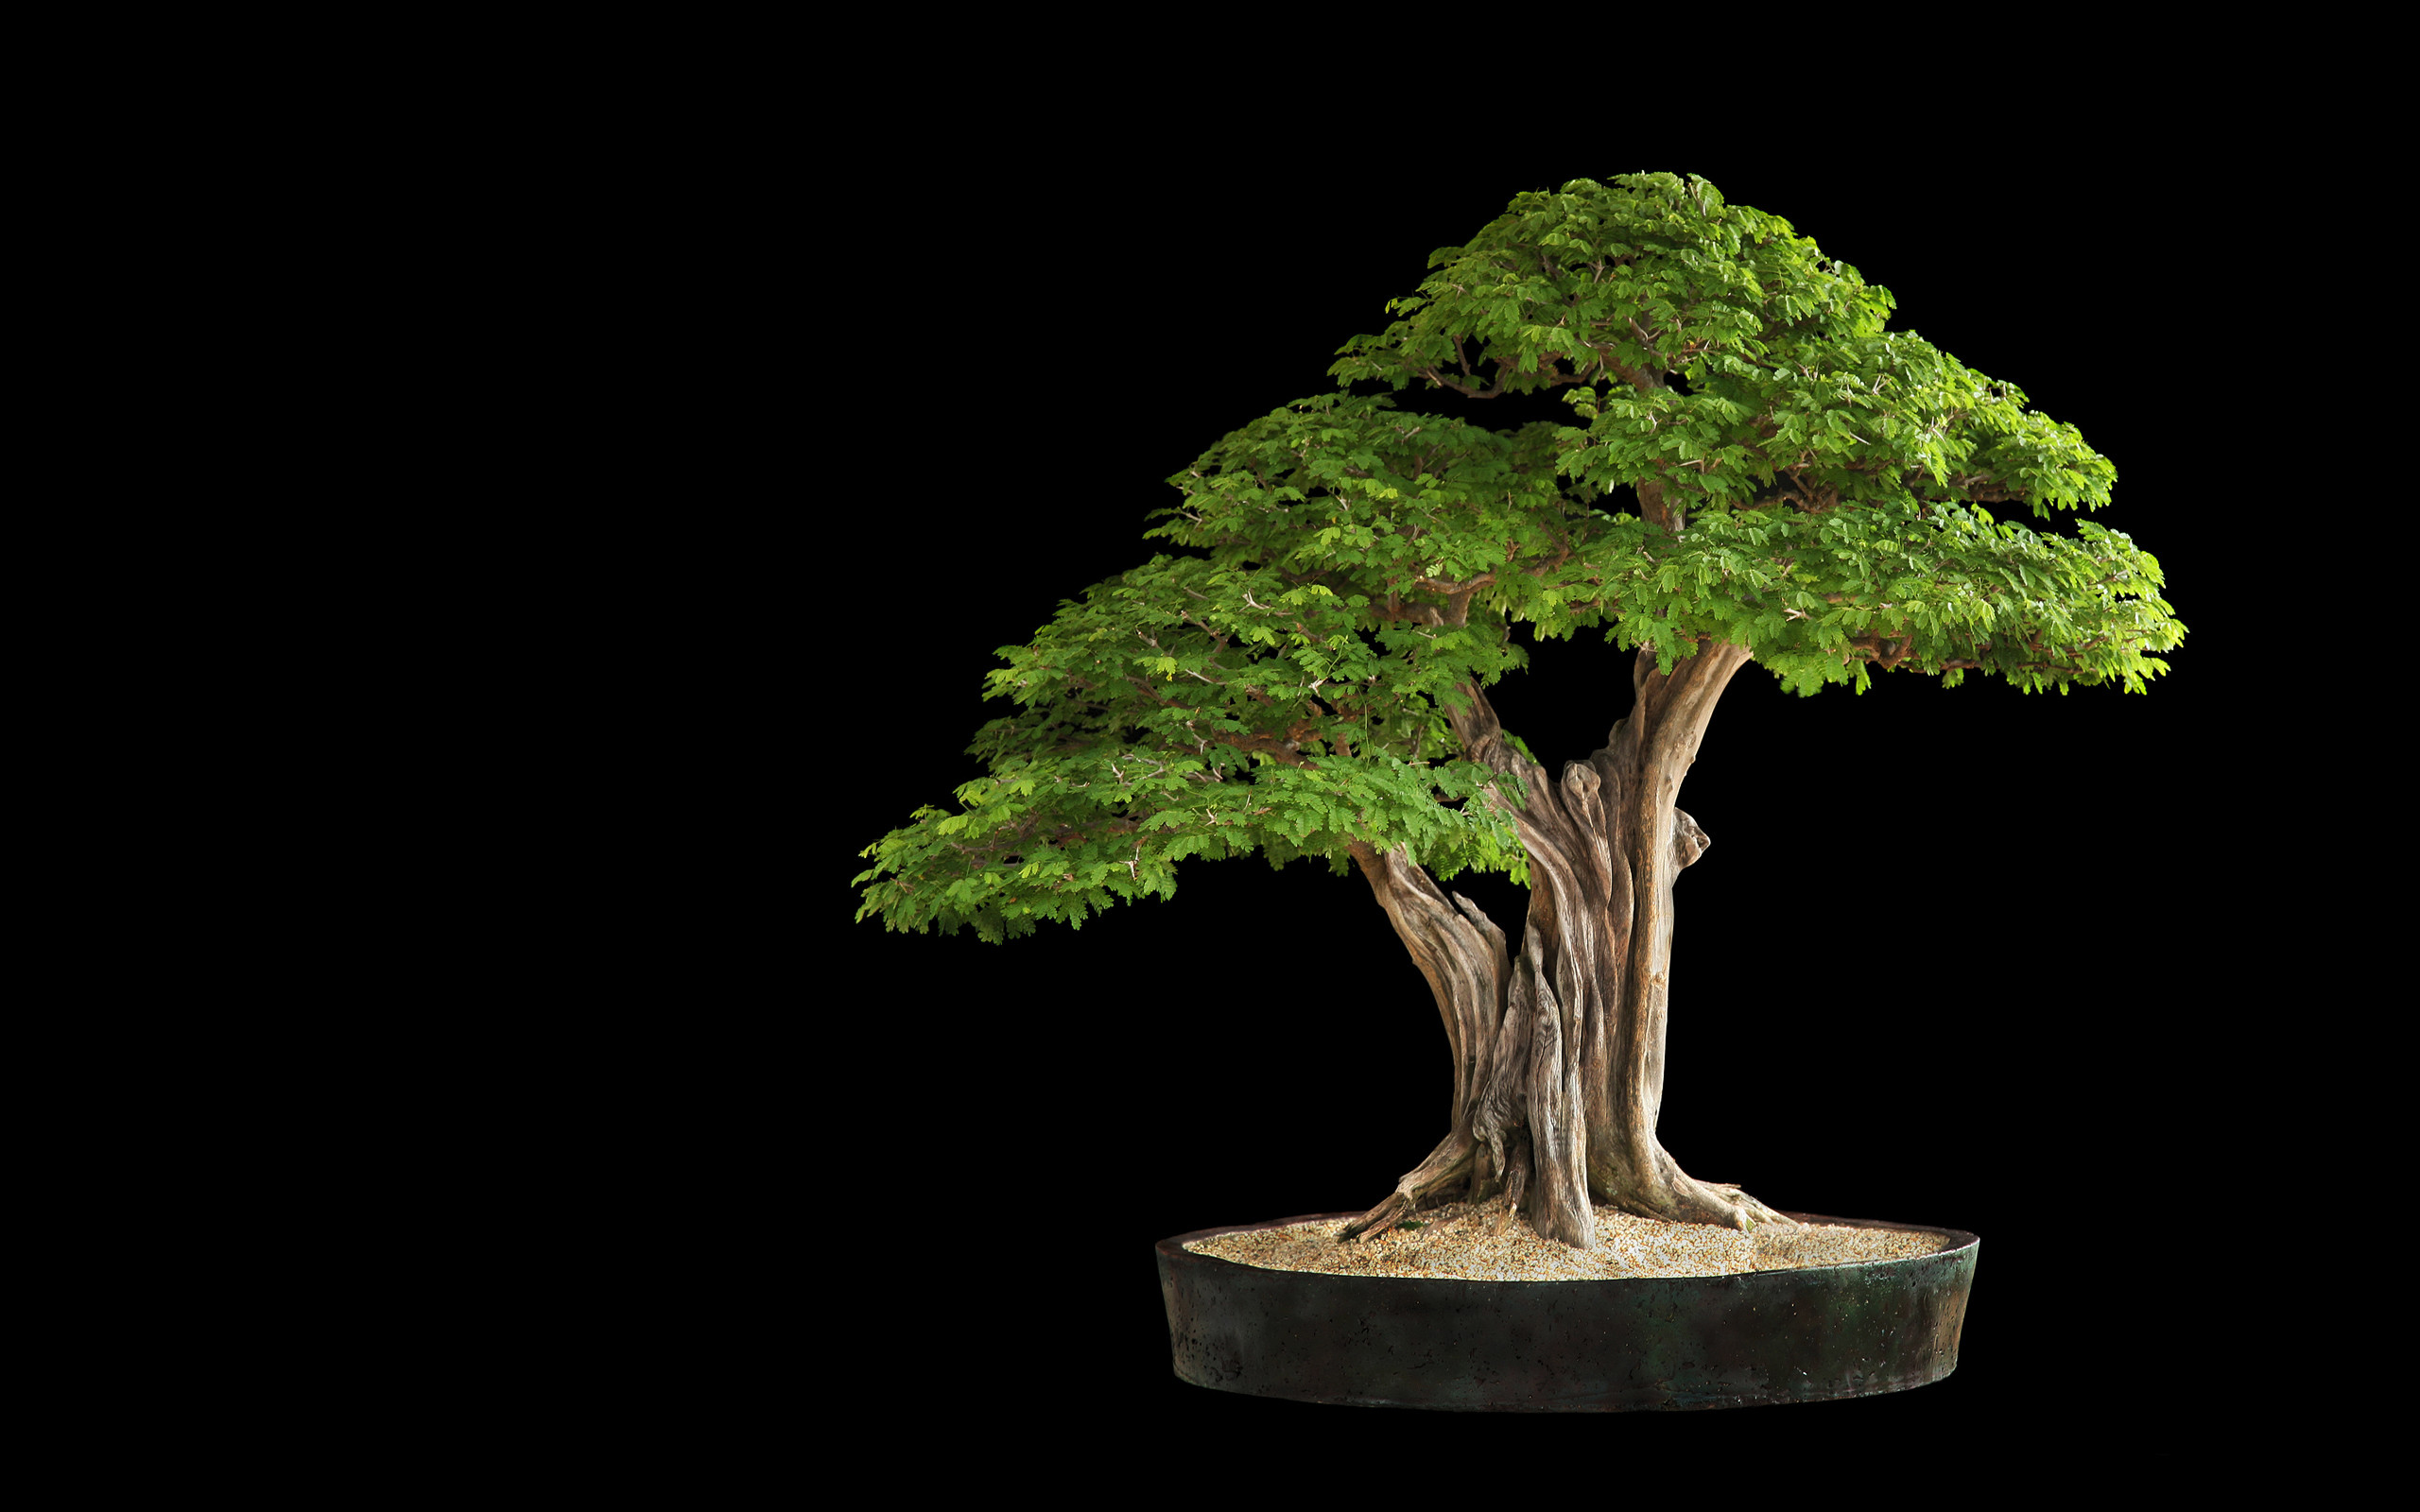 2560x1600 organic,tree, leaves, lovely, bonsai,cool, smart phone, mac wallpaper,  lovely place tree, Wallpaper HD